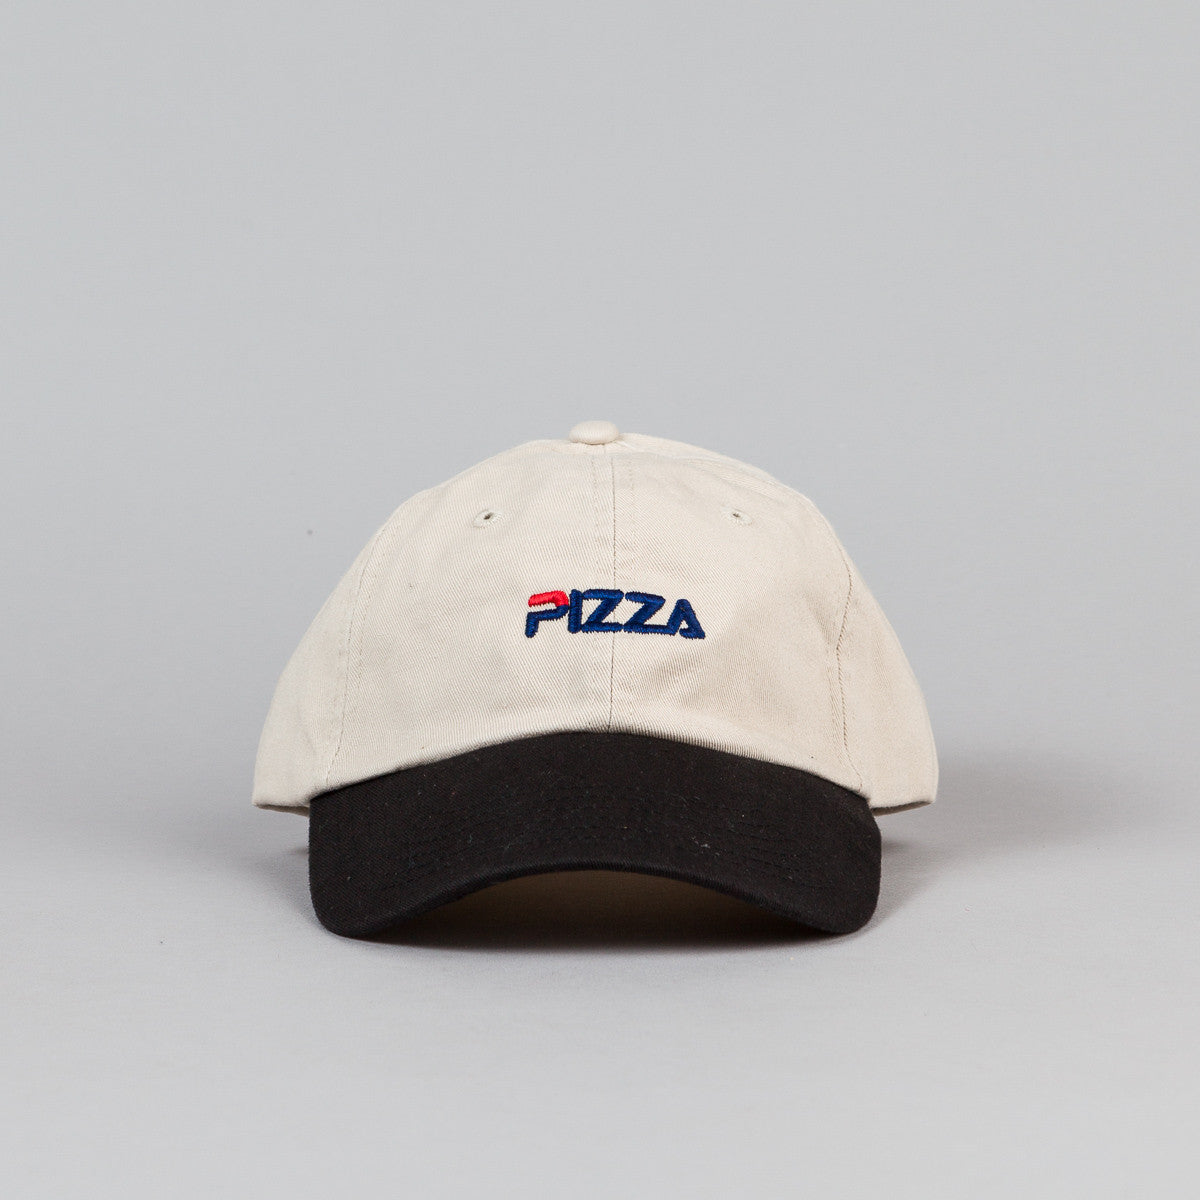 Pizza Skateboards Fizza Delivery Boy Cap - Stone / Black